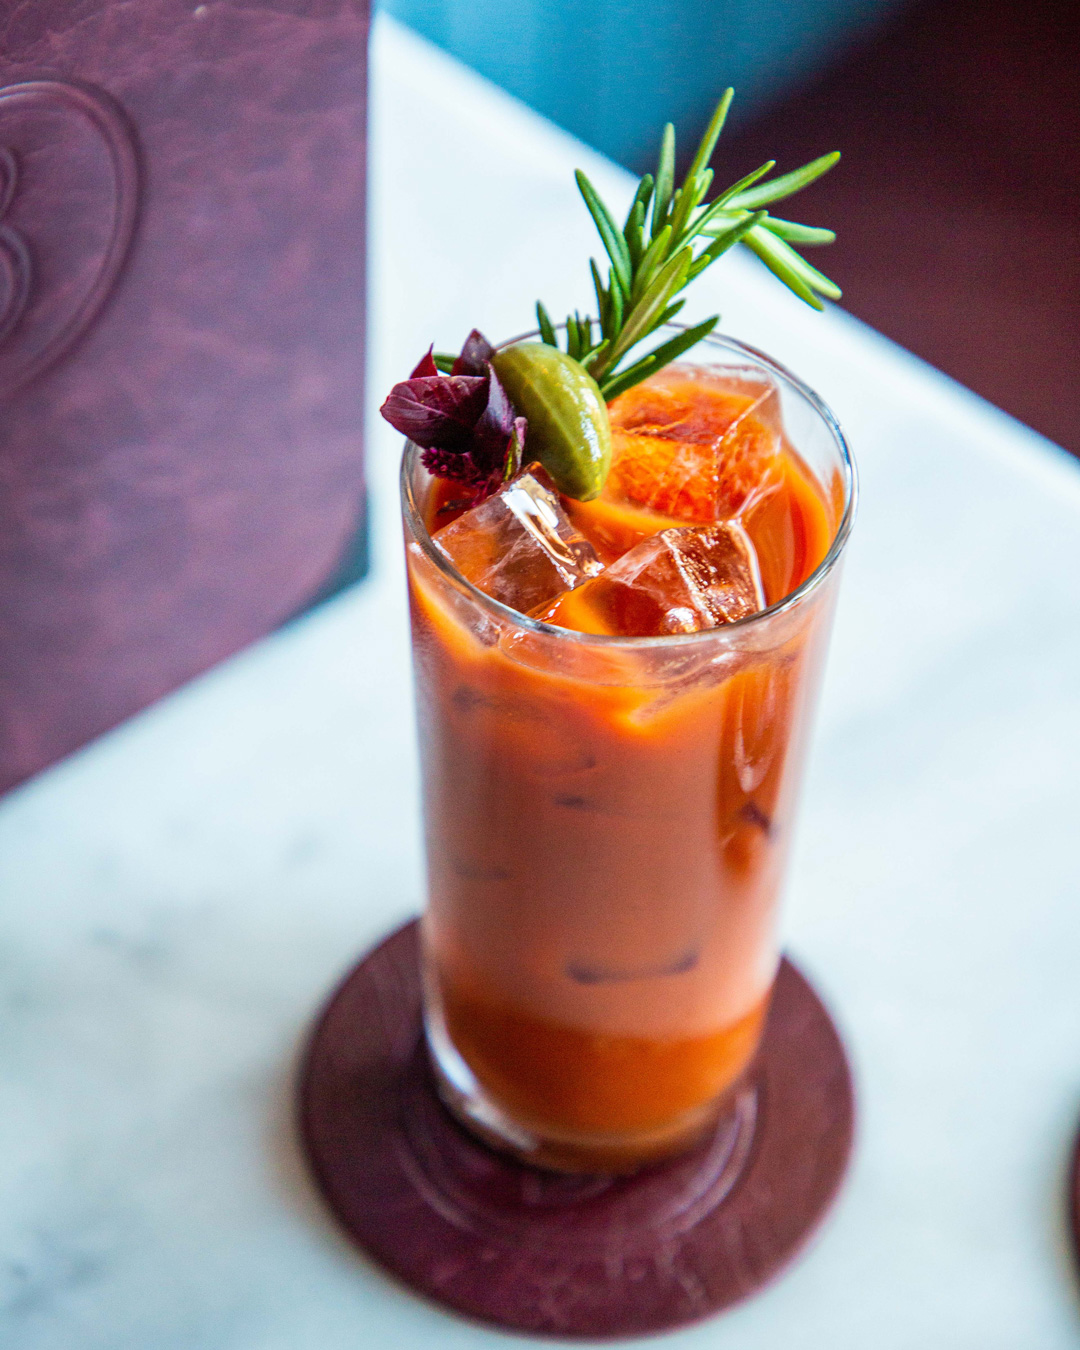 bloody mary from bartolo restaurant in sydney's surry hills